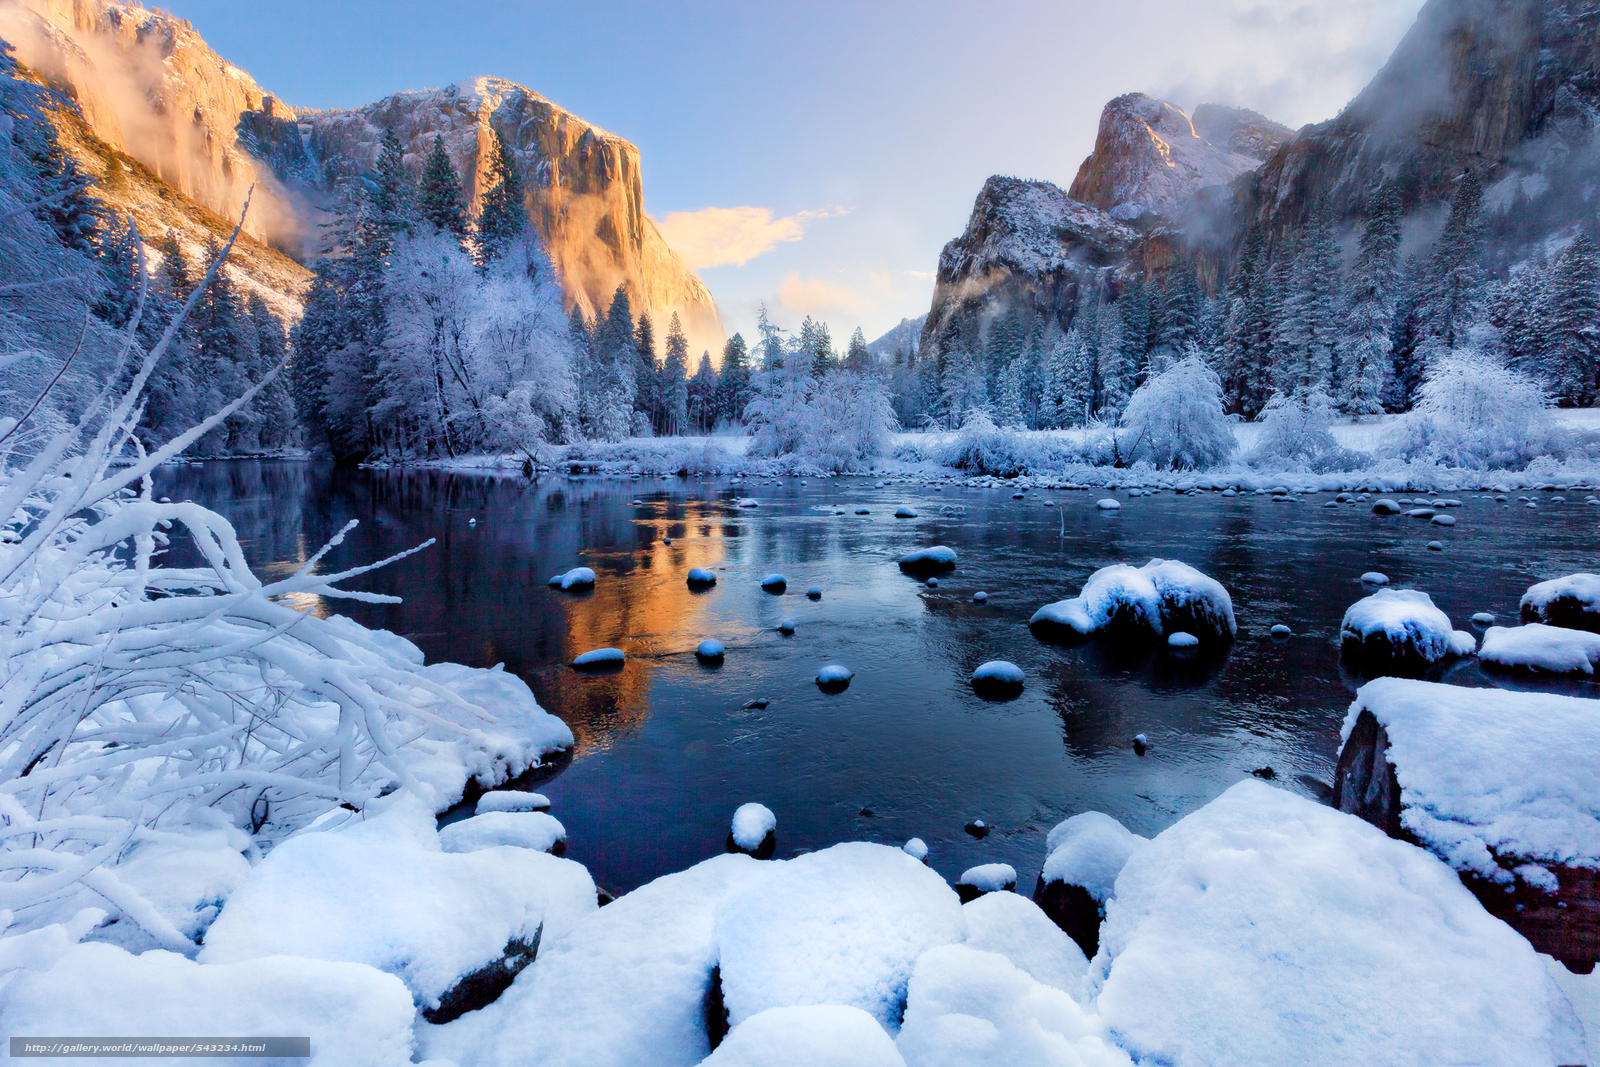 Download wallpaper winter season Yosemite National Park California 1600x1067